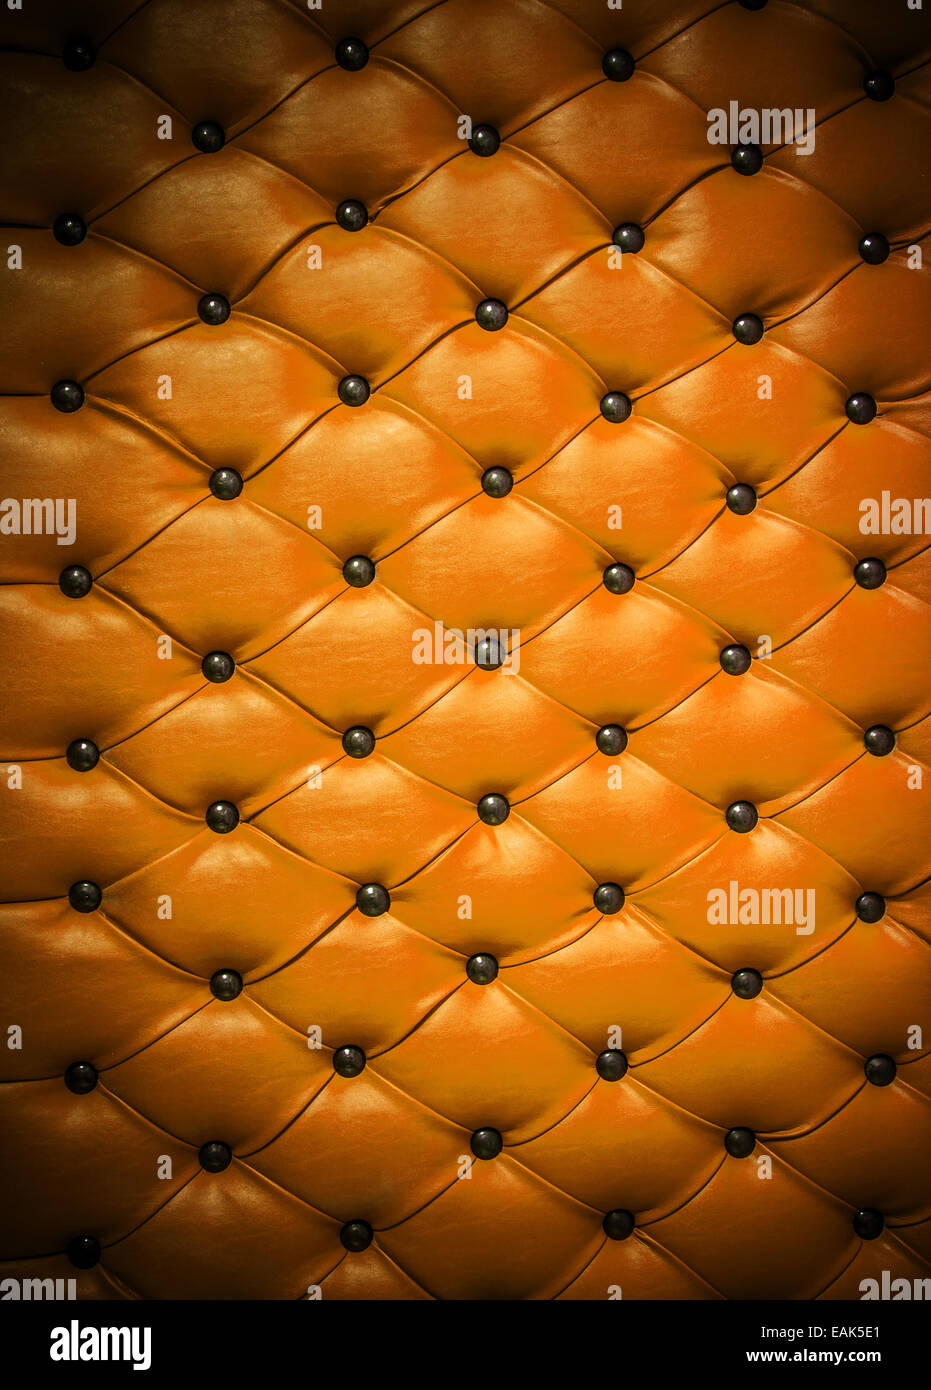 Detail of leather upholstery - Stock Image